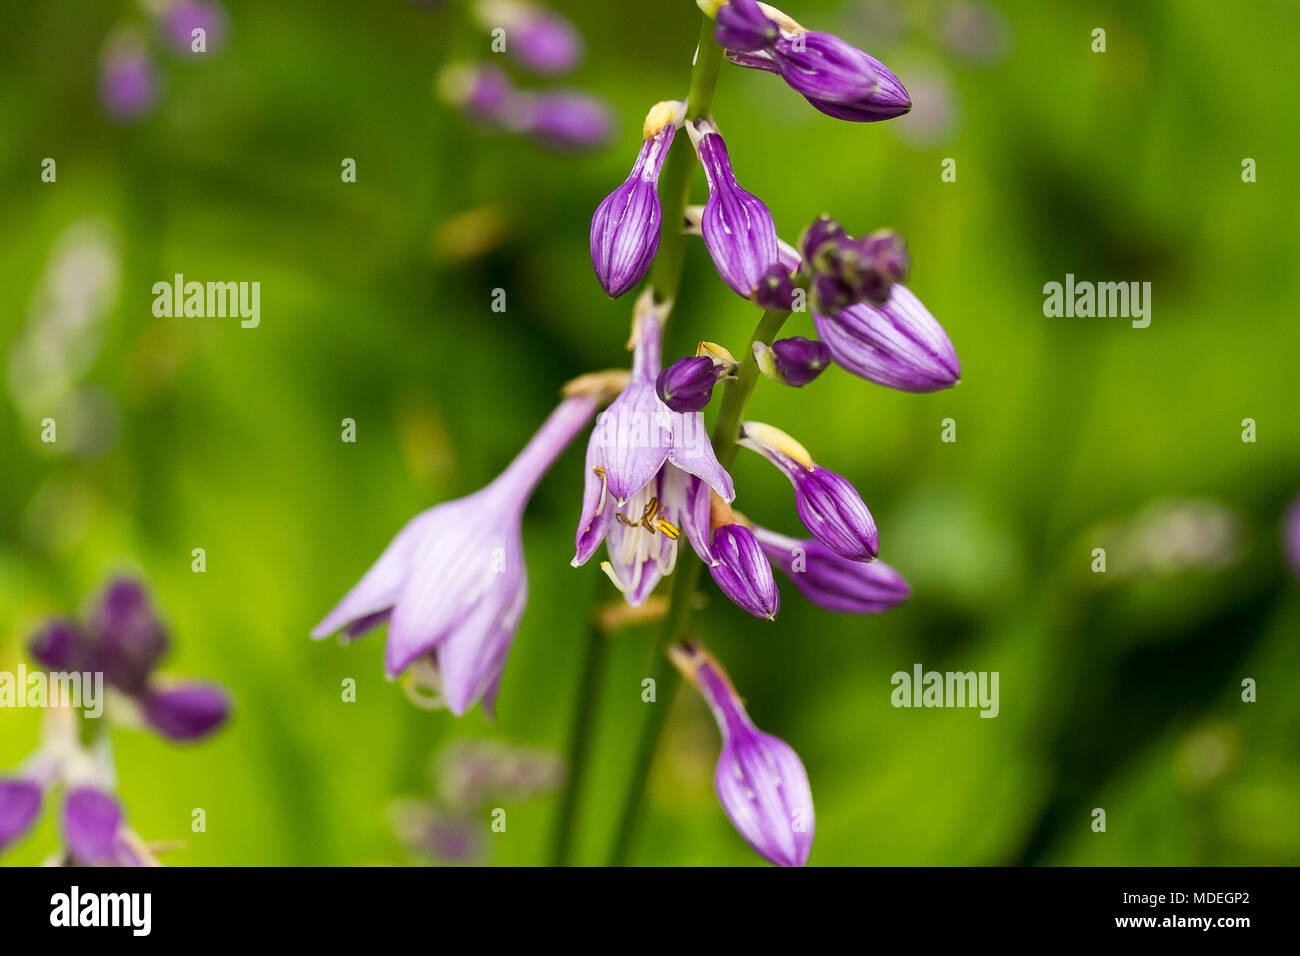 Hosta Plant Blooming In The Morning Sun Stock Photo 180414698 Alamy